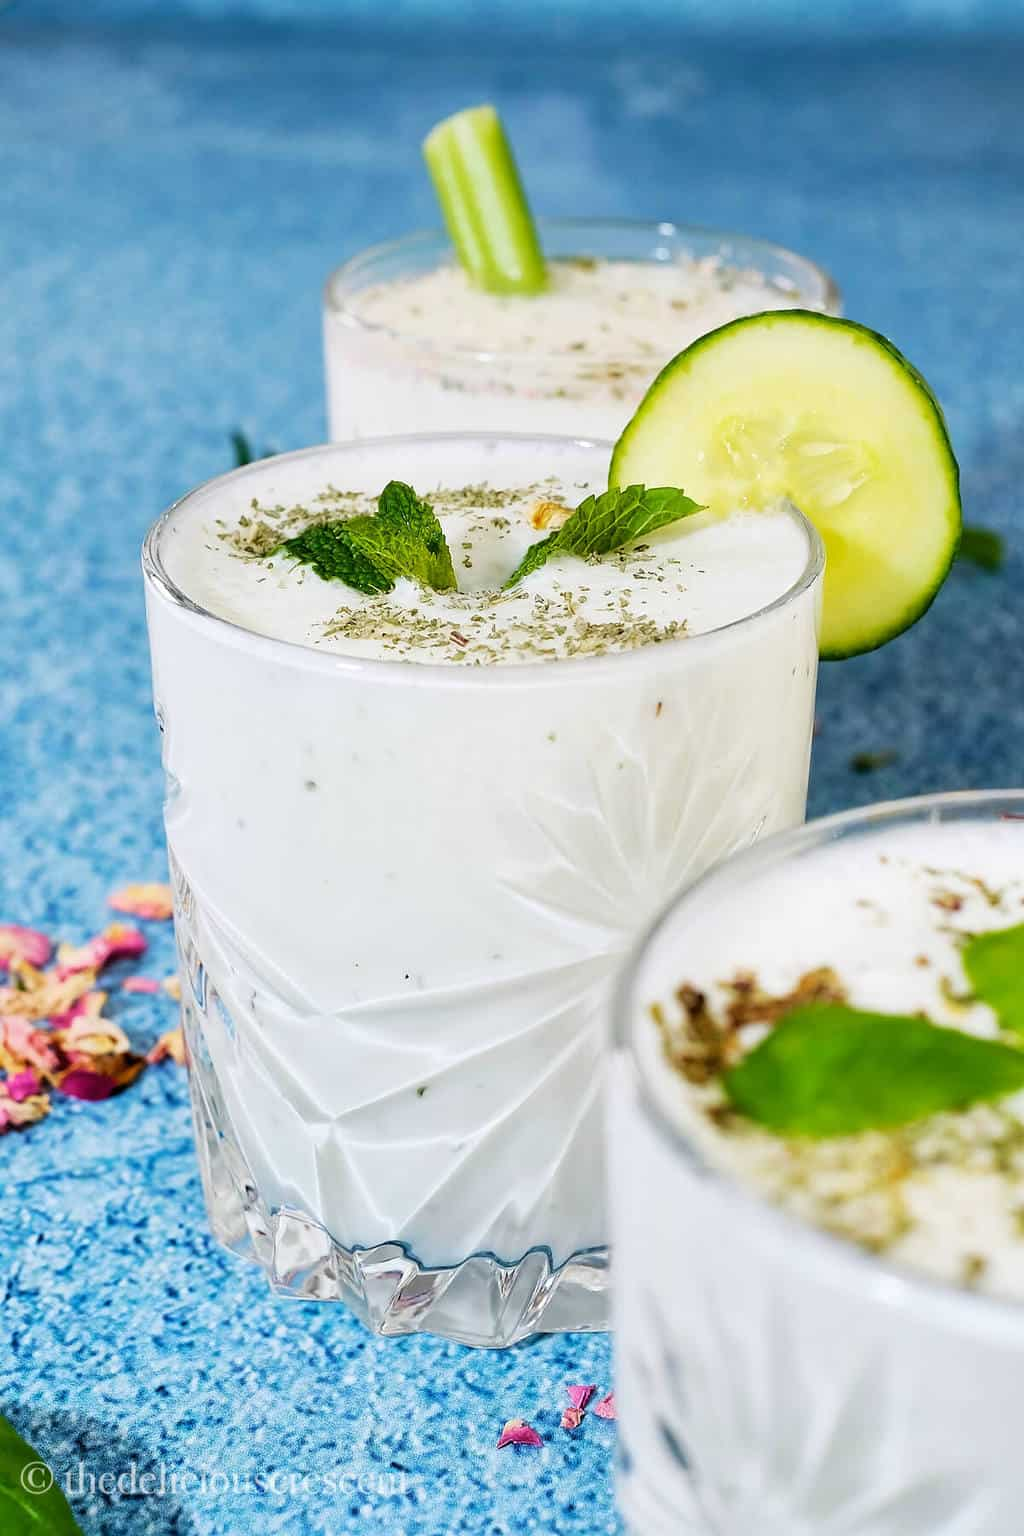 Yogurt drink in a glass with a cucumber slice on the rim.